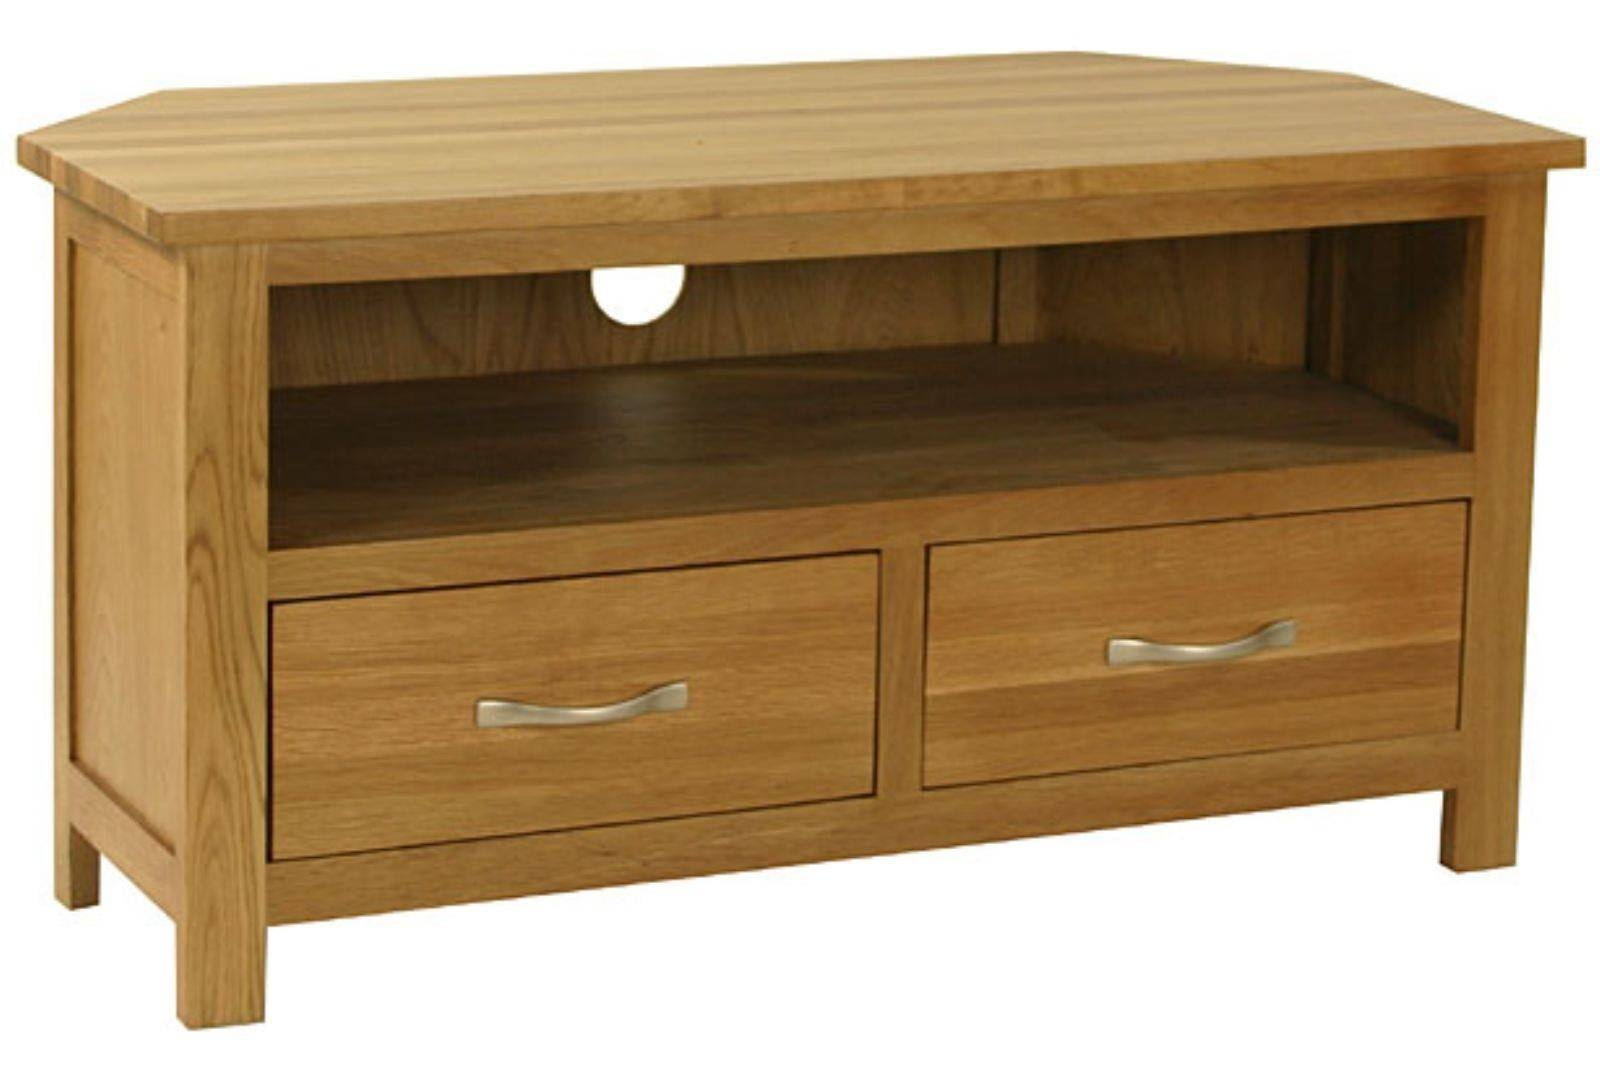 Nursing Home Furniture Corner Tv Unit From Hill & Hill Design pertaining to Solid Oak Corner Tv Cabinets (Image 11 of 15)